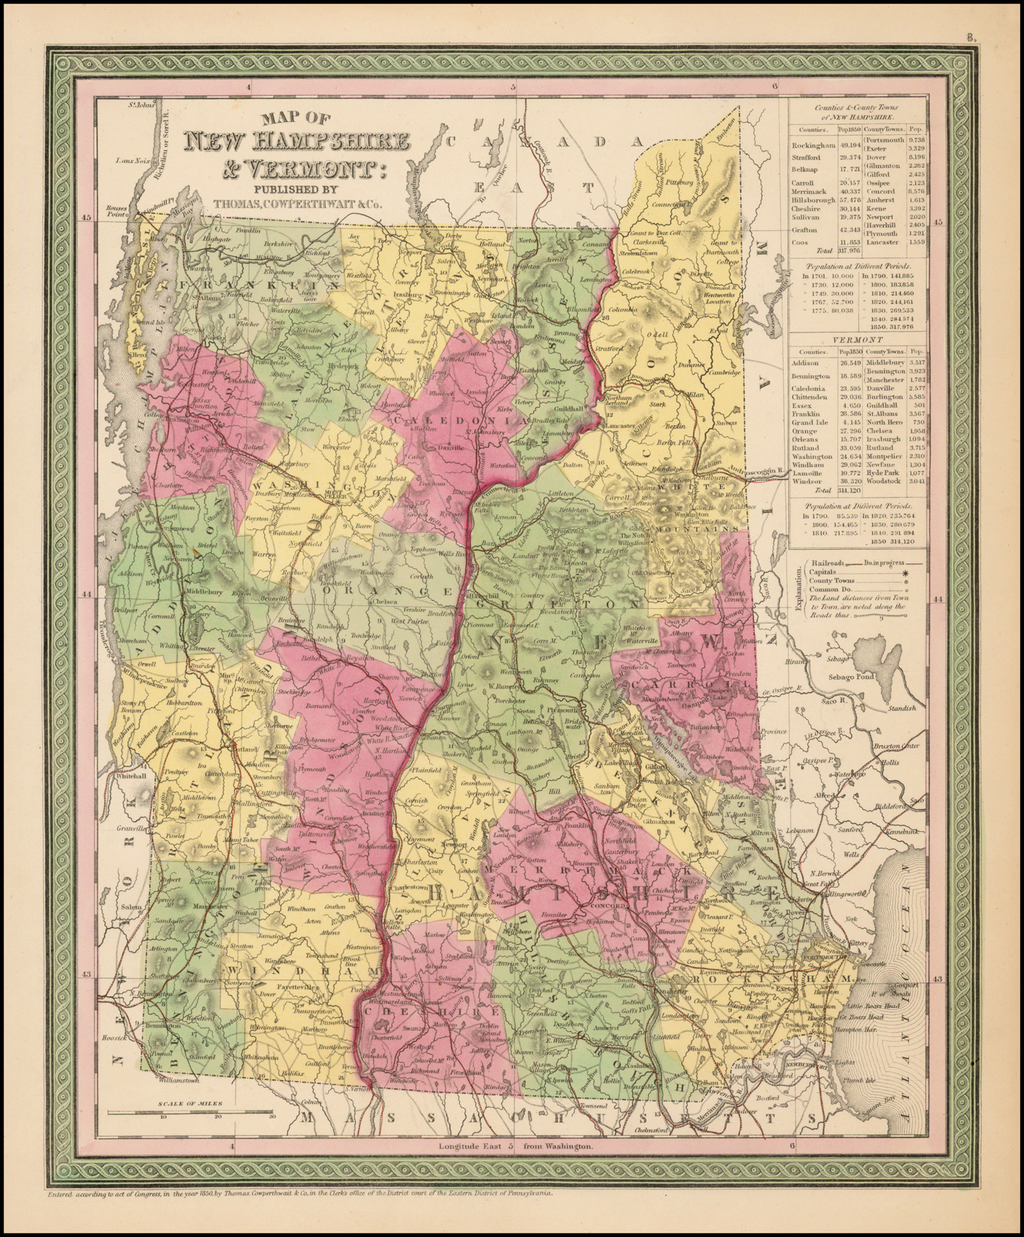 Map of New Hampshire & Vermont:  Published By Thomas Cowperthwait & Co. By Thomas, Cowperthwait & Co.